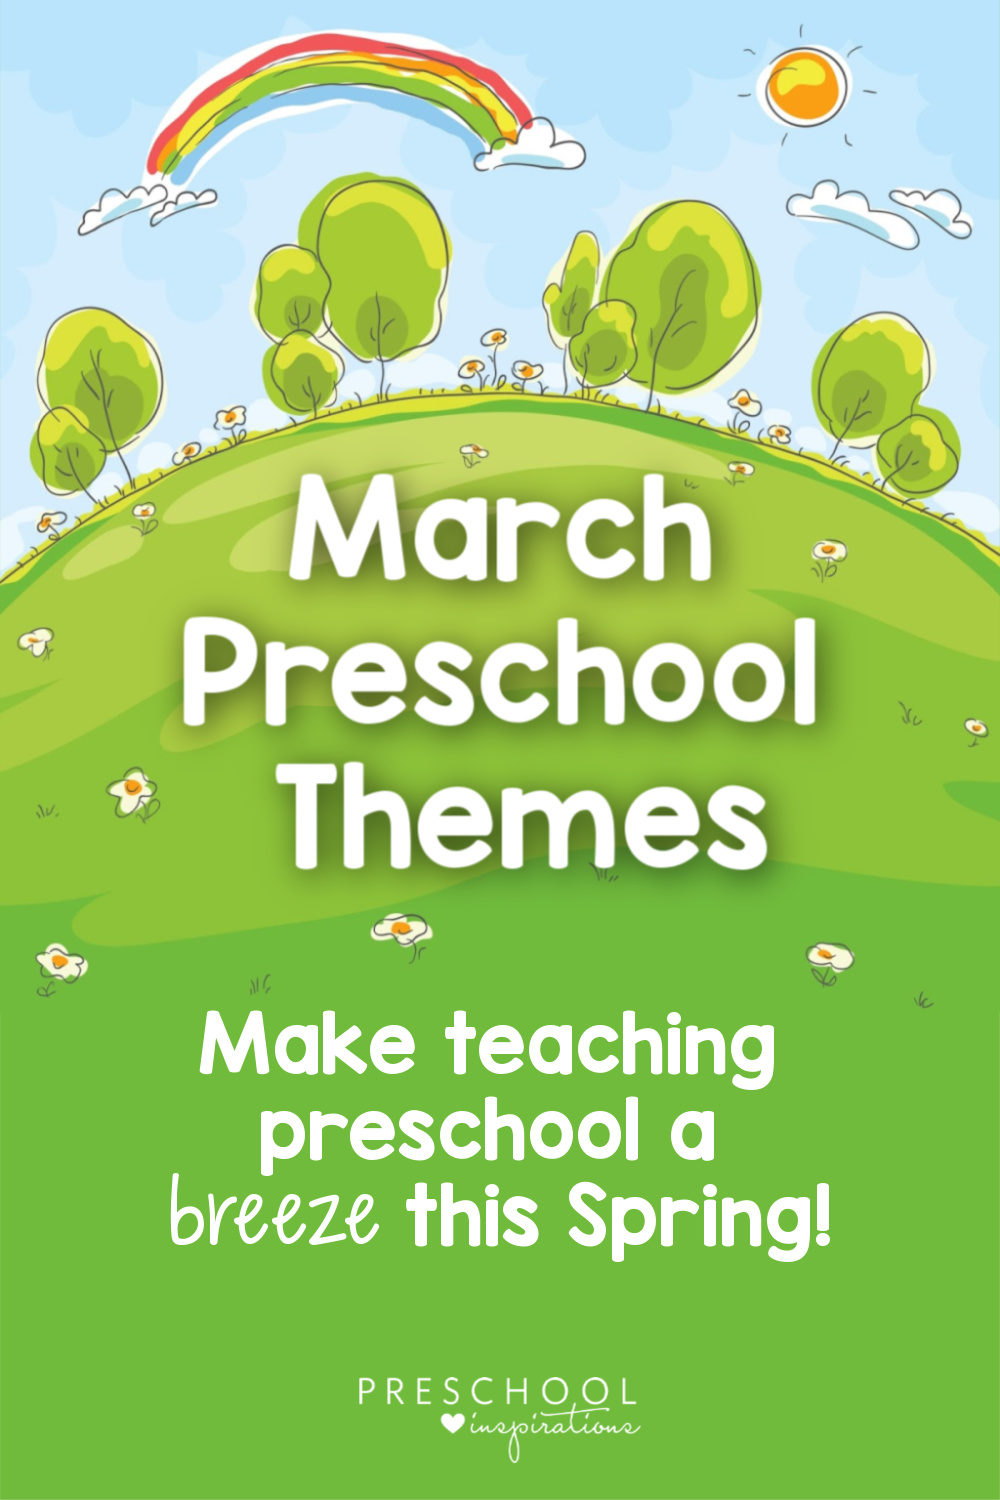 Use March themes to teach preschool this spring! Here's a list of great March preschool themes, as well as lesson plans, crafts, and hands-on learning activities for your classroom or at home!